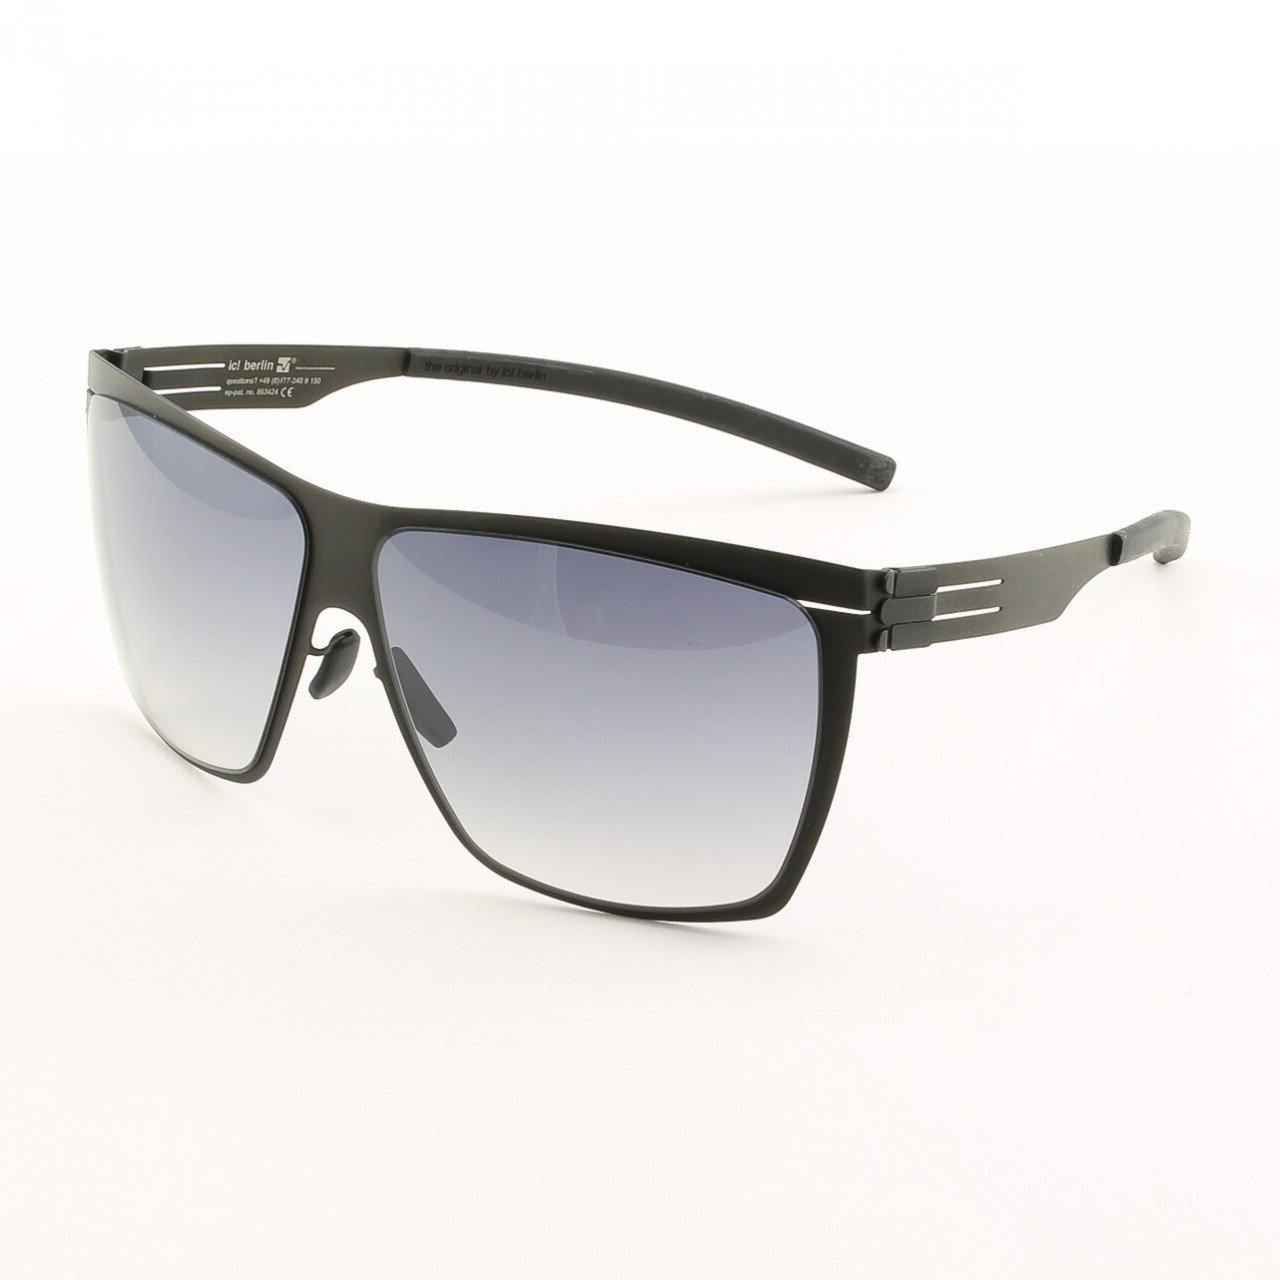 ic! Berlin Dark Energy Sunglasses Col. Black with Black Gradient Lenses